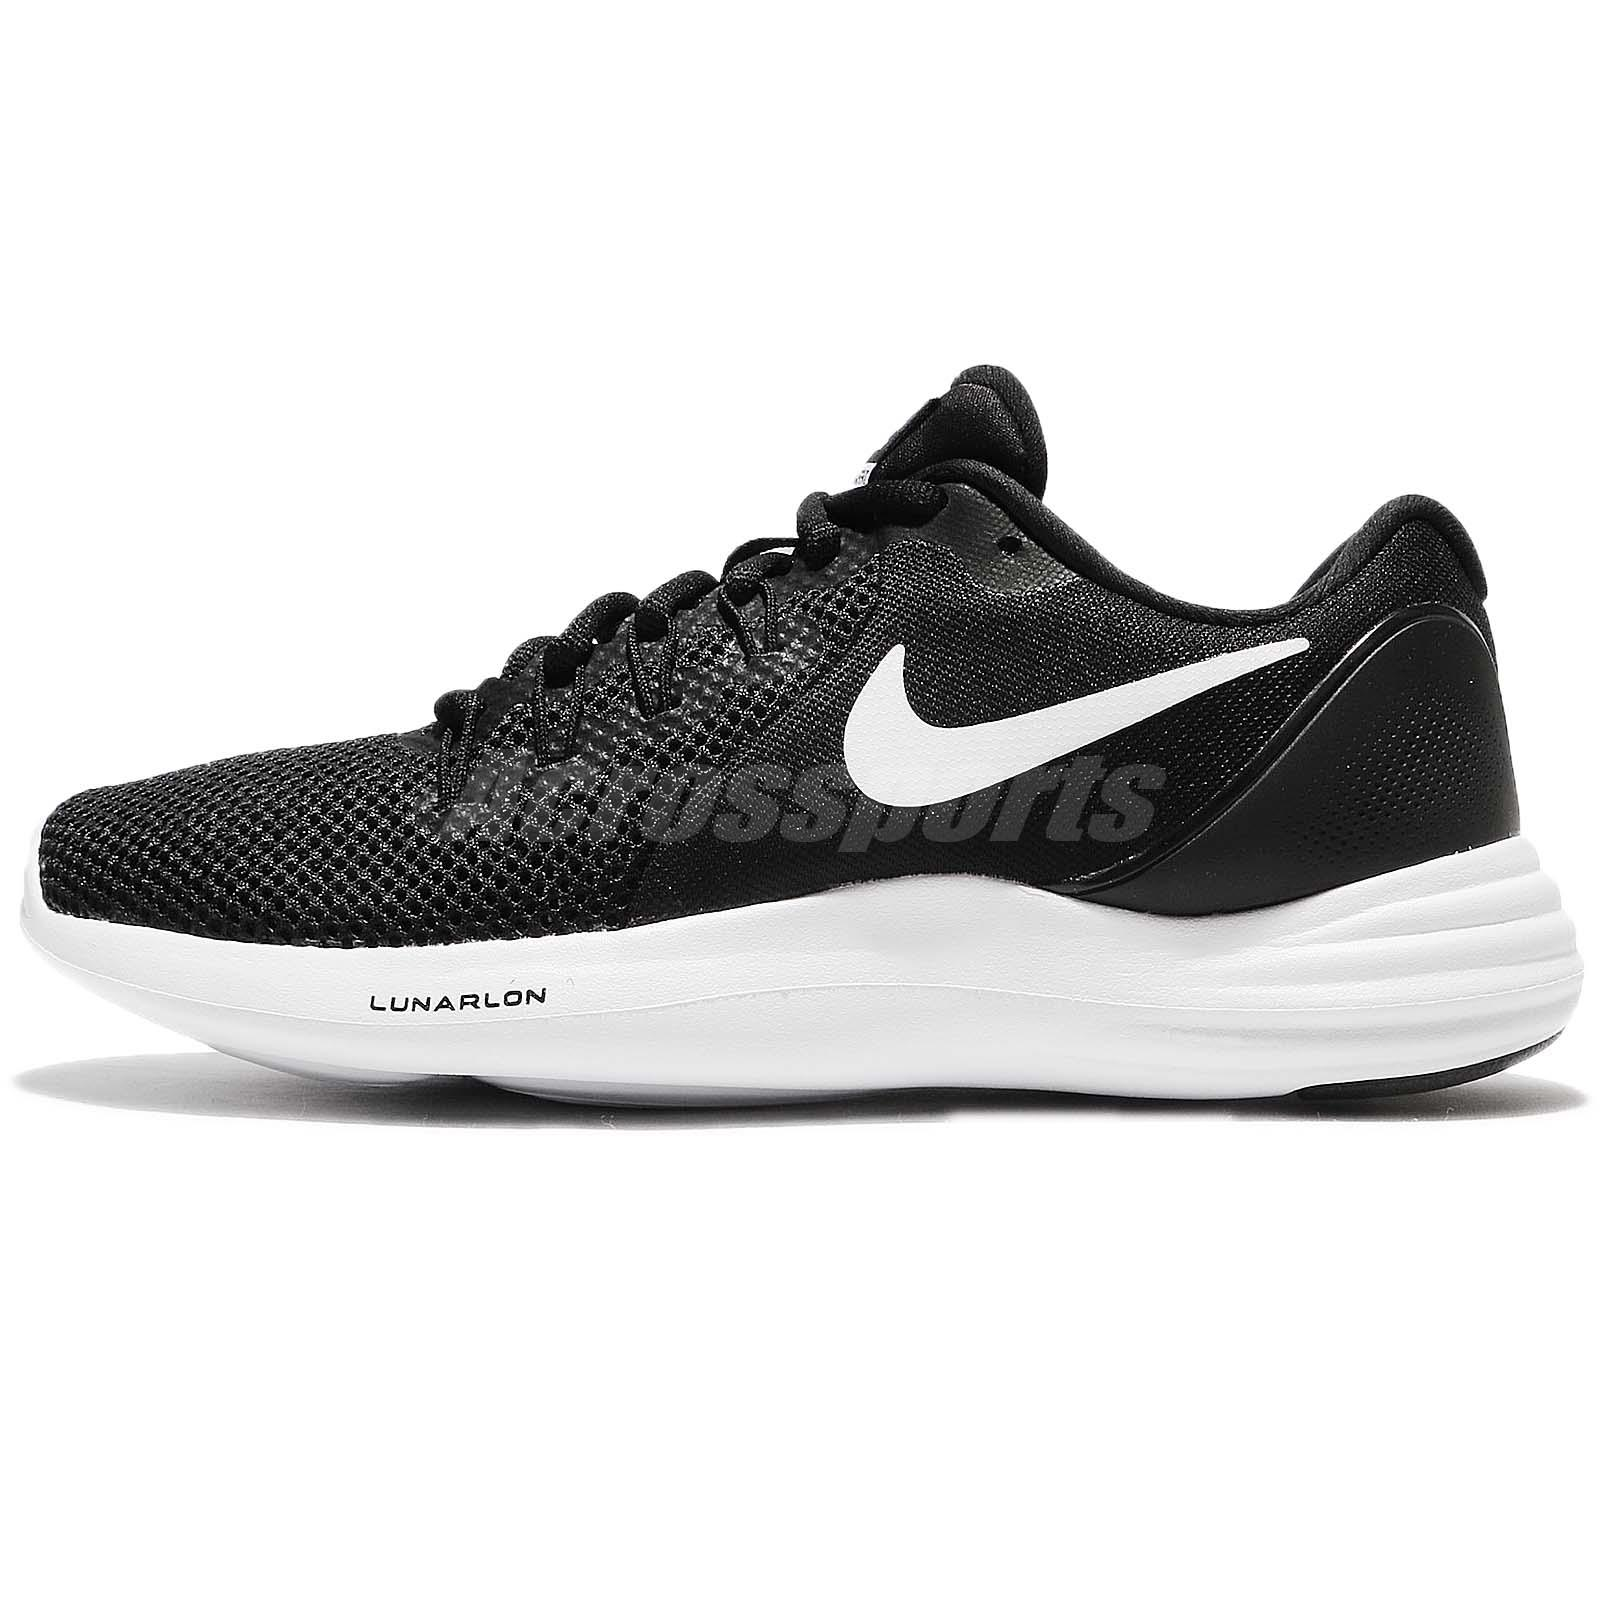 online store c2a36 09a1c Wmns Nike Lunar Apparent Black White Cool Grey Women Running Shoes  908998-001